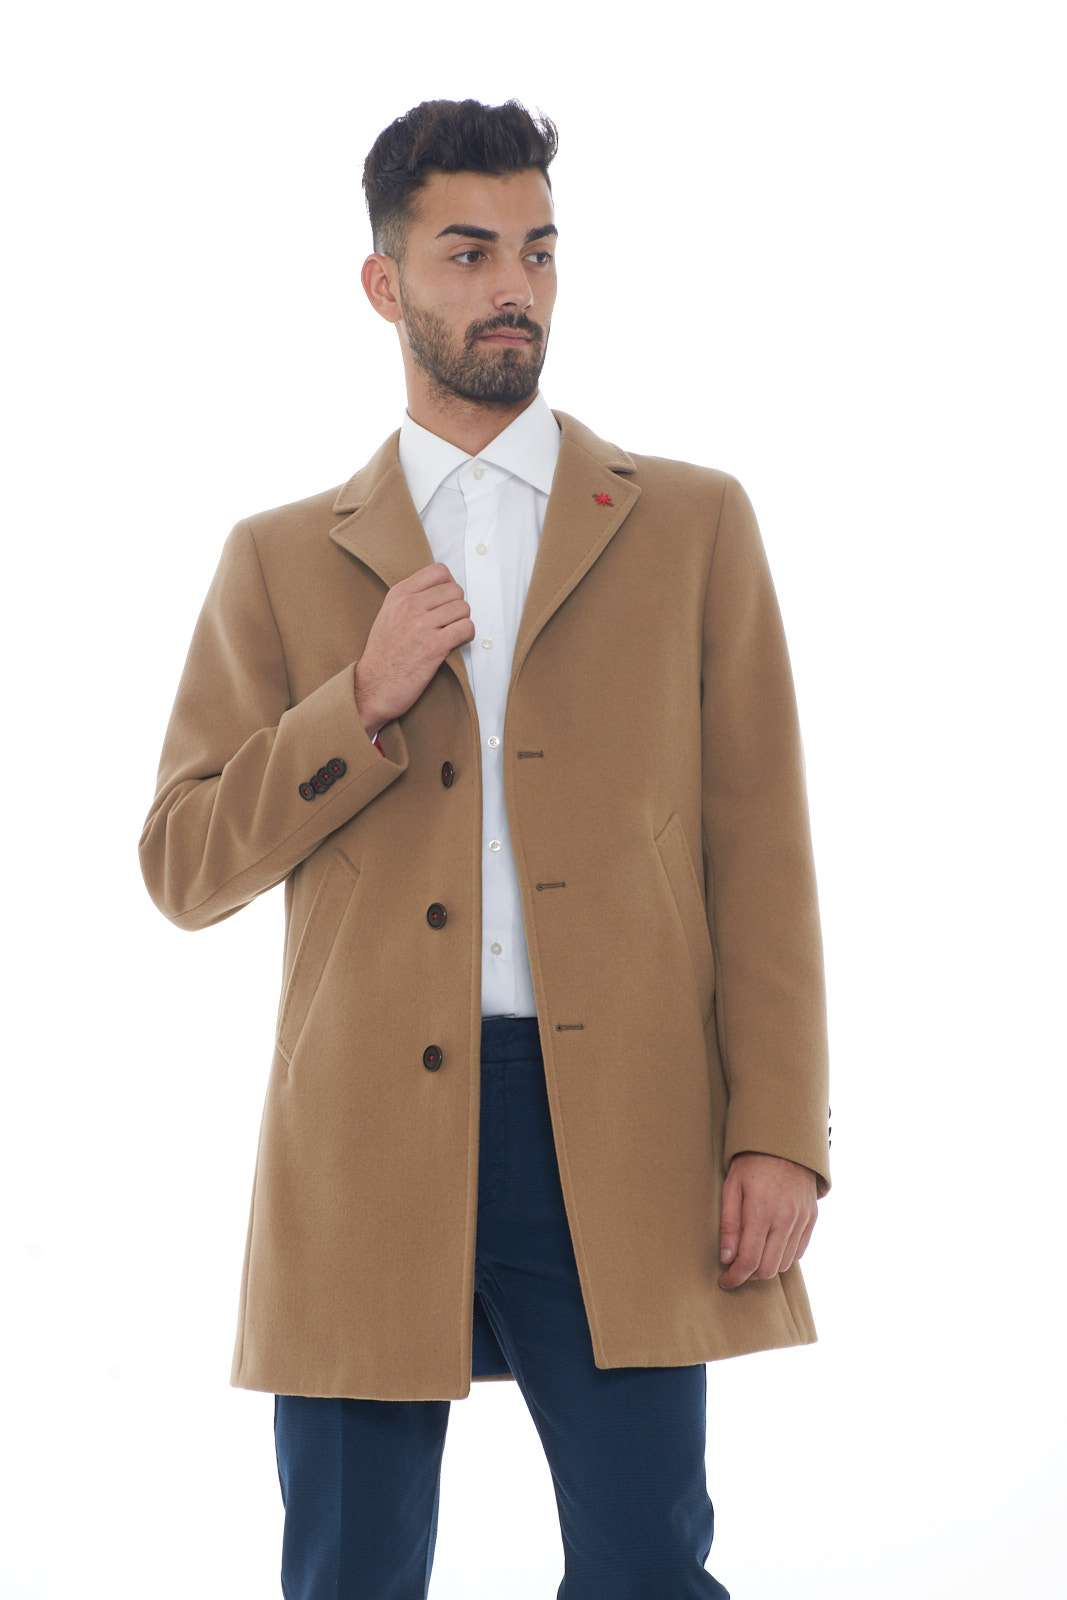 https://www.parmax.com/media/catalog/product/a/i/AI-outlet_parmax-cappotto-uomo-Manuel-Ritz-2732C4448%20193727-A.jpg